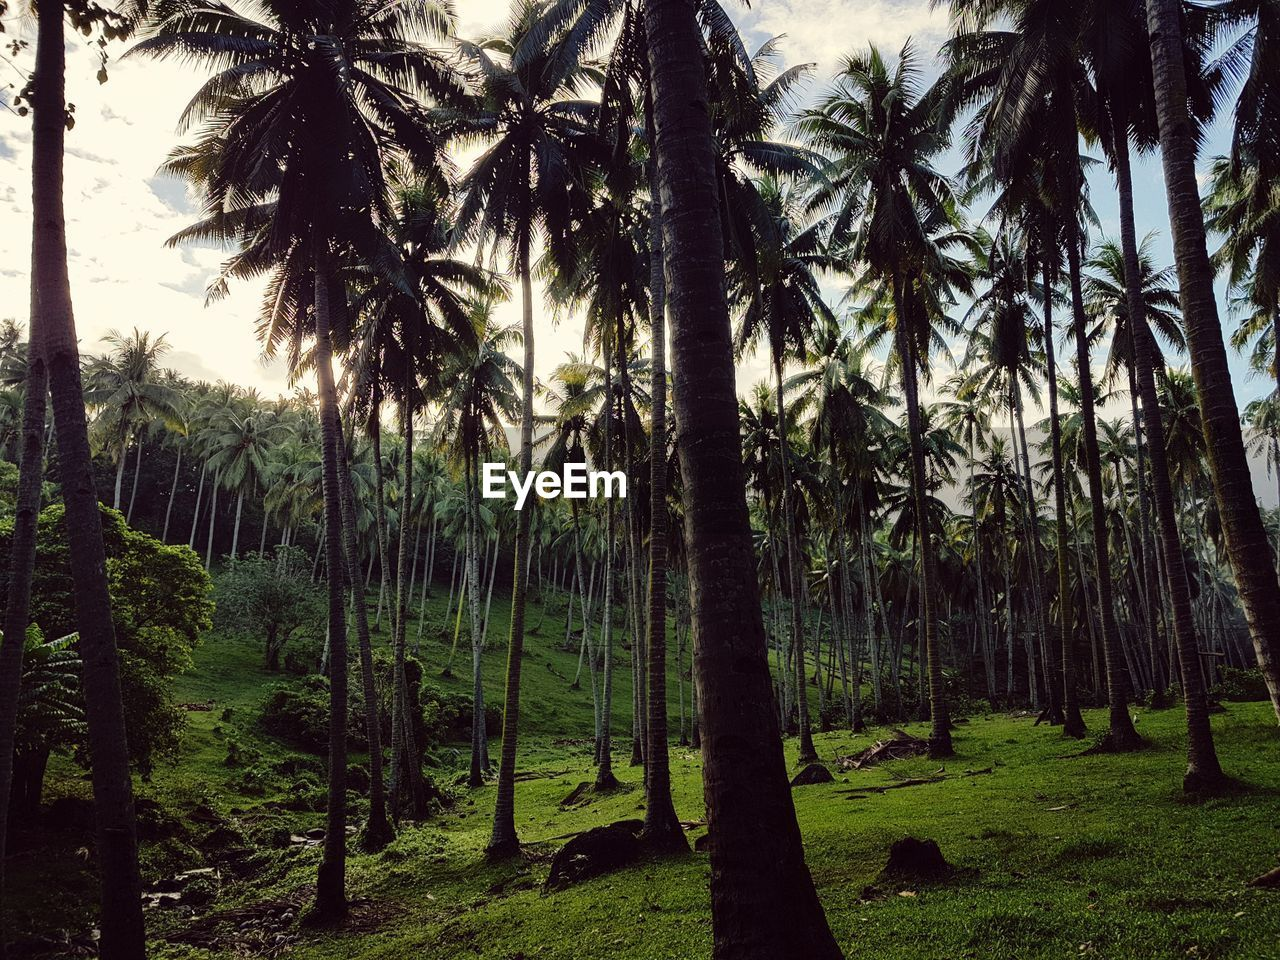 plant, tree, palm tree, land, tropical climate, growth, tranquility, beauty in nature, tree trunk, nature, trunk, tranquil scene, forest, no people, scenics - nature, sky, day, field, outdoors, grass, woodland, coconut palm tree, treelined, palm leaf